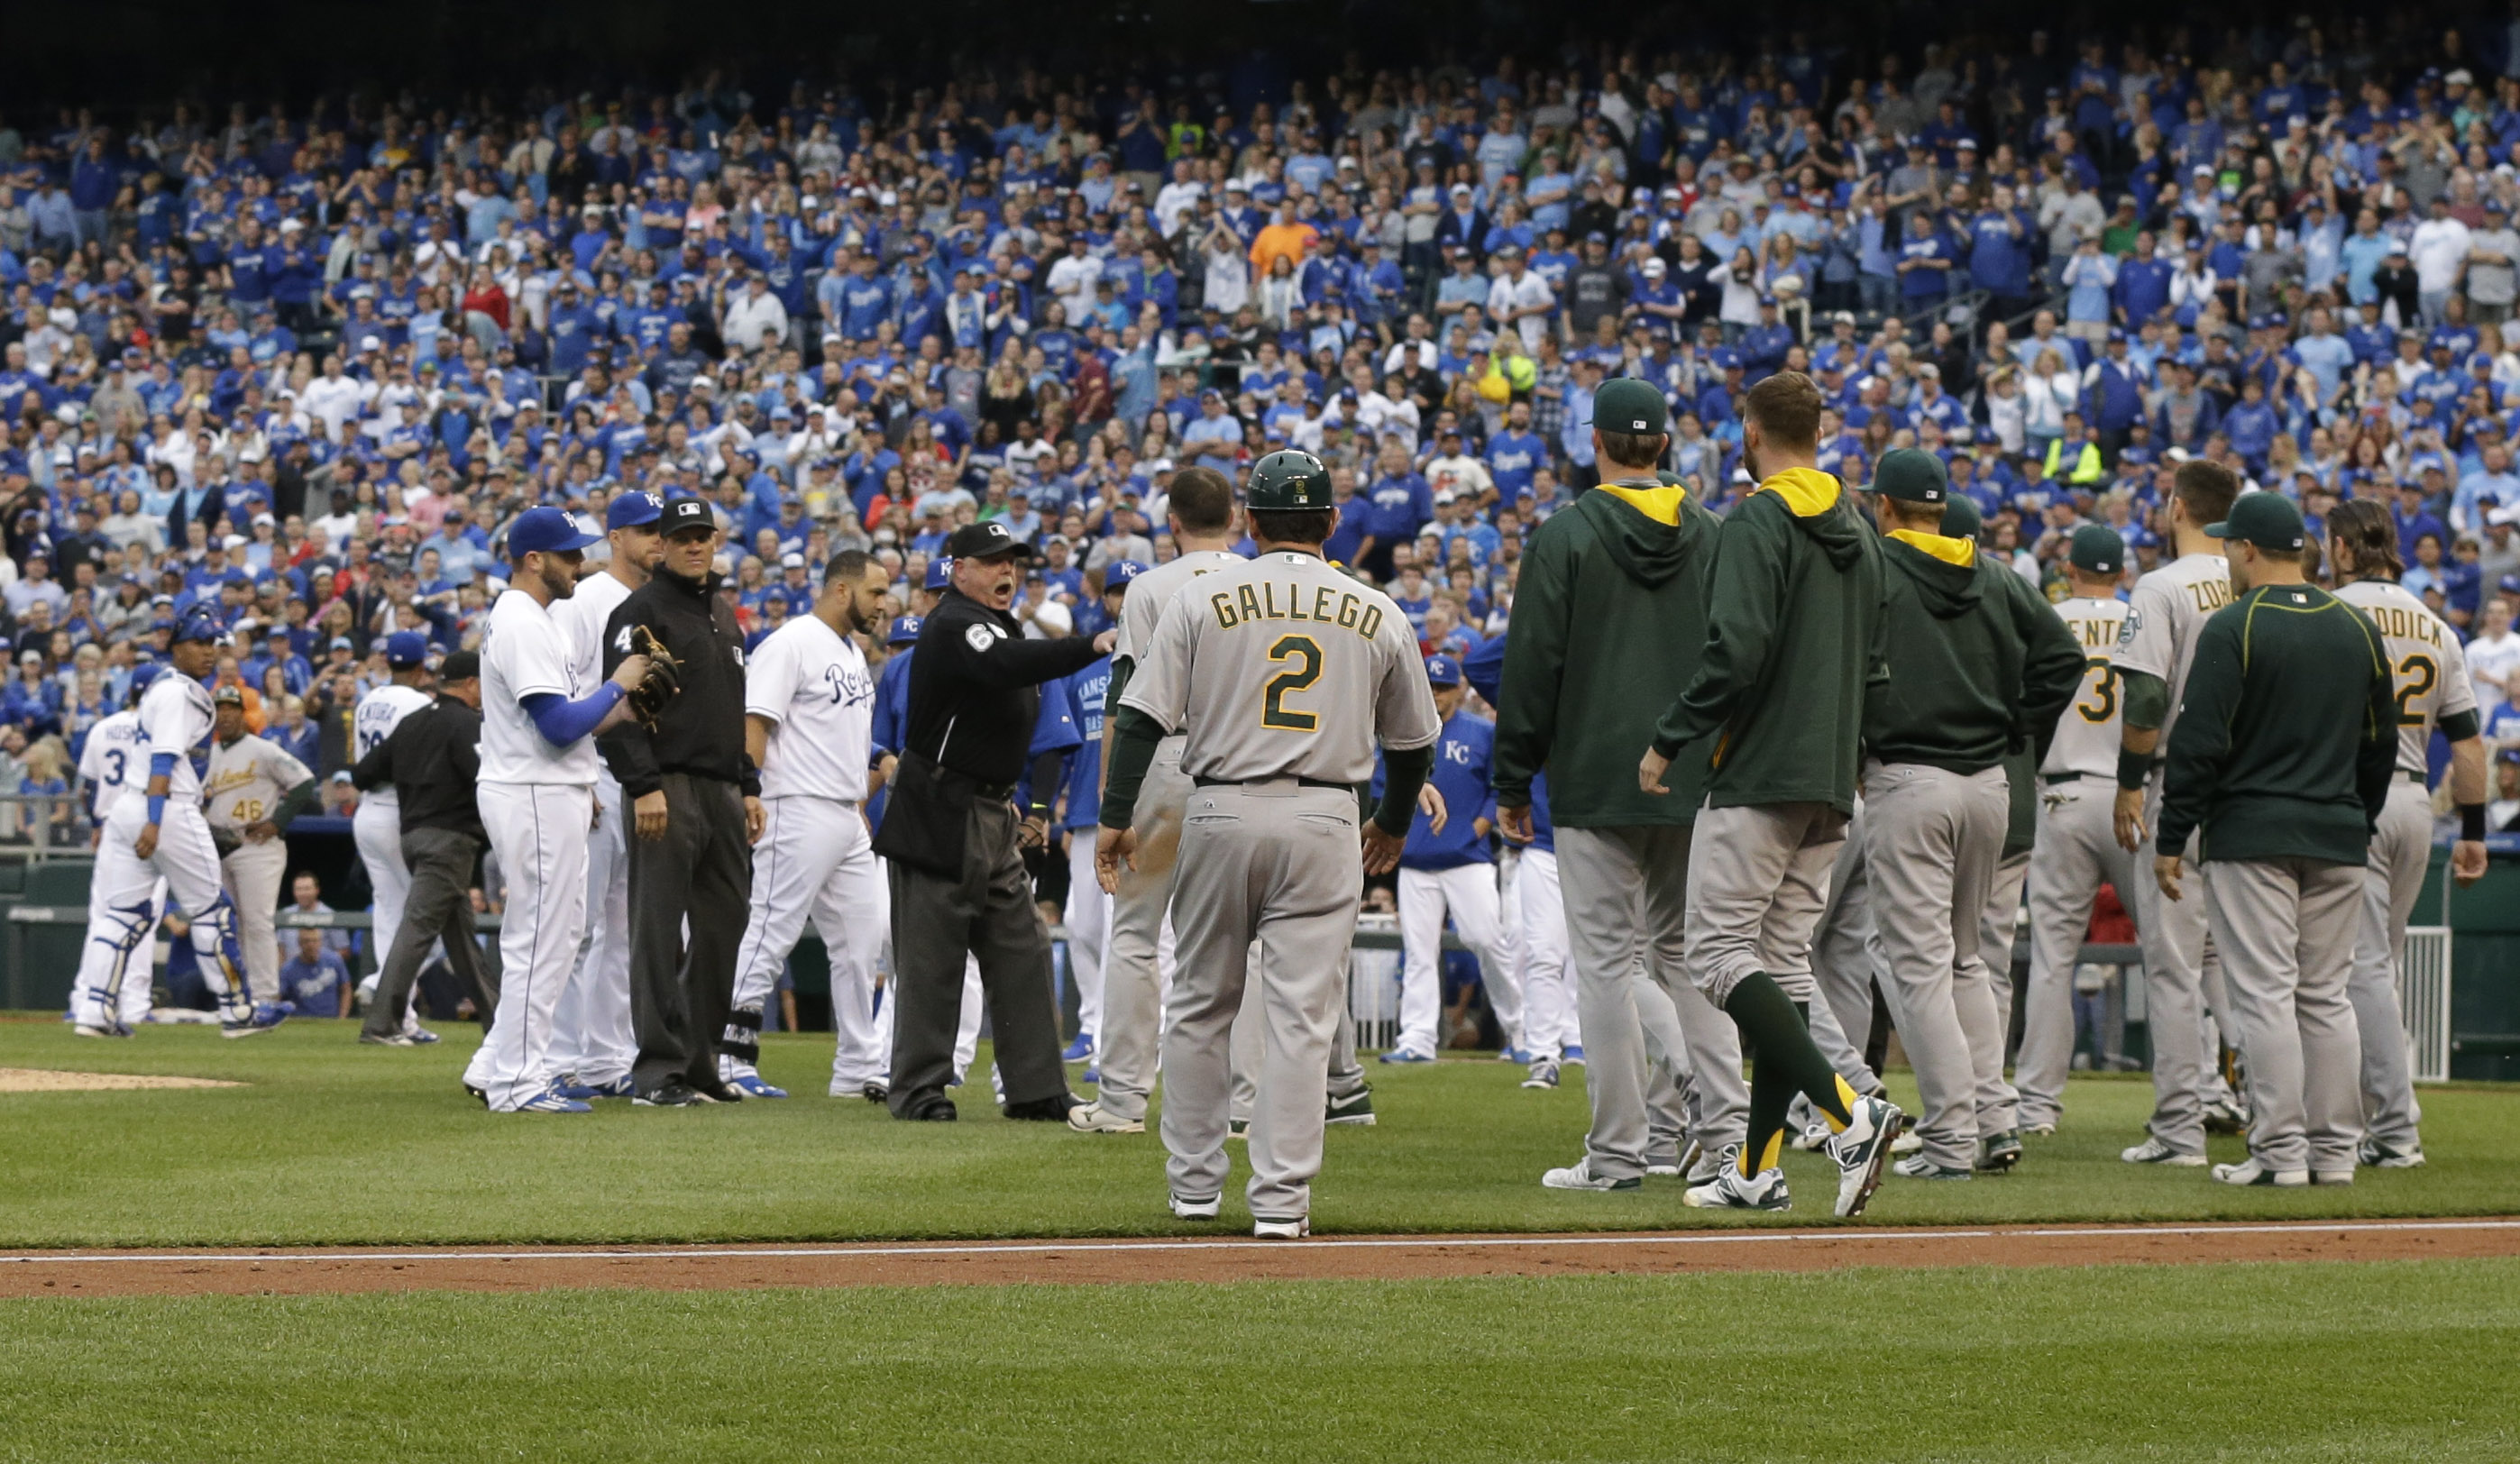 Umpires get between the Oakland Athletics and Kansas City Royals after benches emptied after Oakland Athletics' Brett Lawrie was hit by a pitch during the fourth inning of a baseball game at Kauffman Stadium in Kansas City, Mo., Saturday, April 18, 2015.